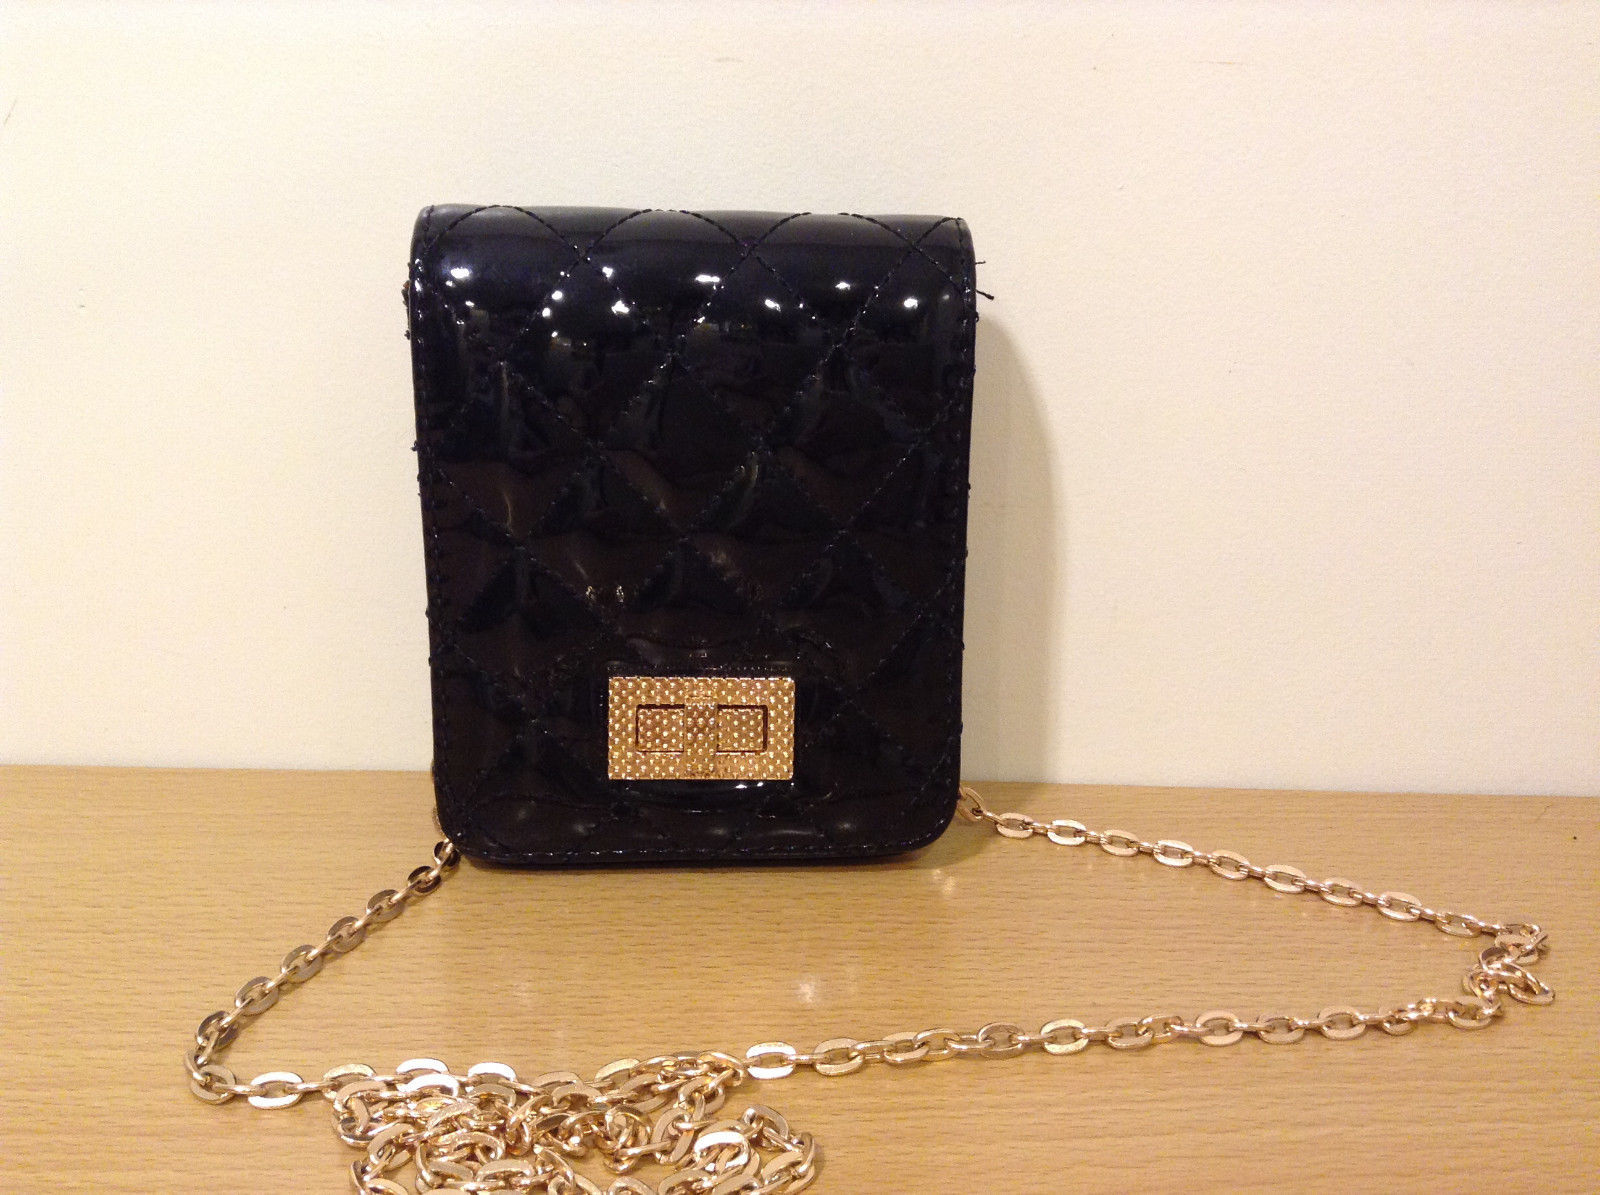 NWT Black Quilted Small Evening Handbag Purse Shoulder Bag or Wallet by MAD